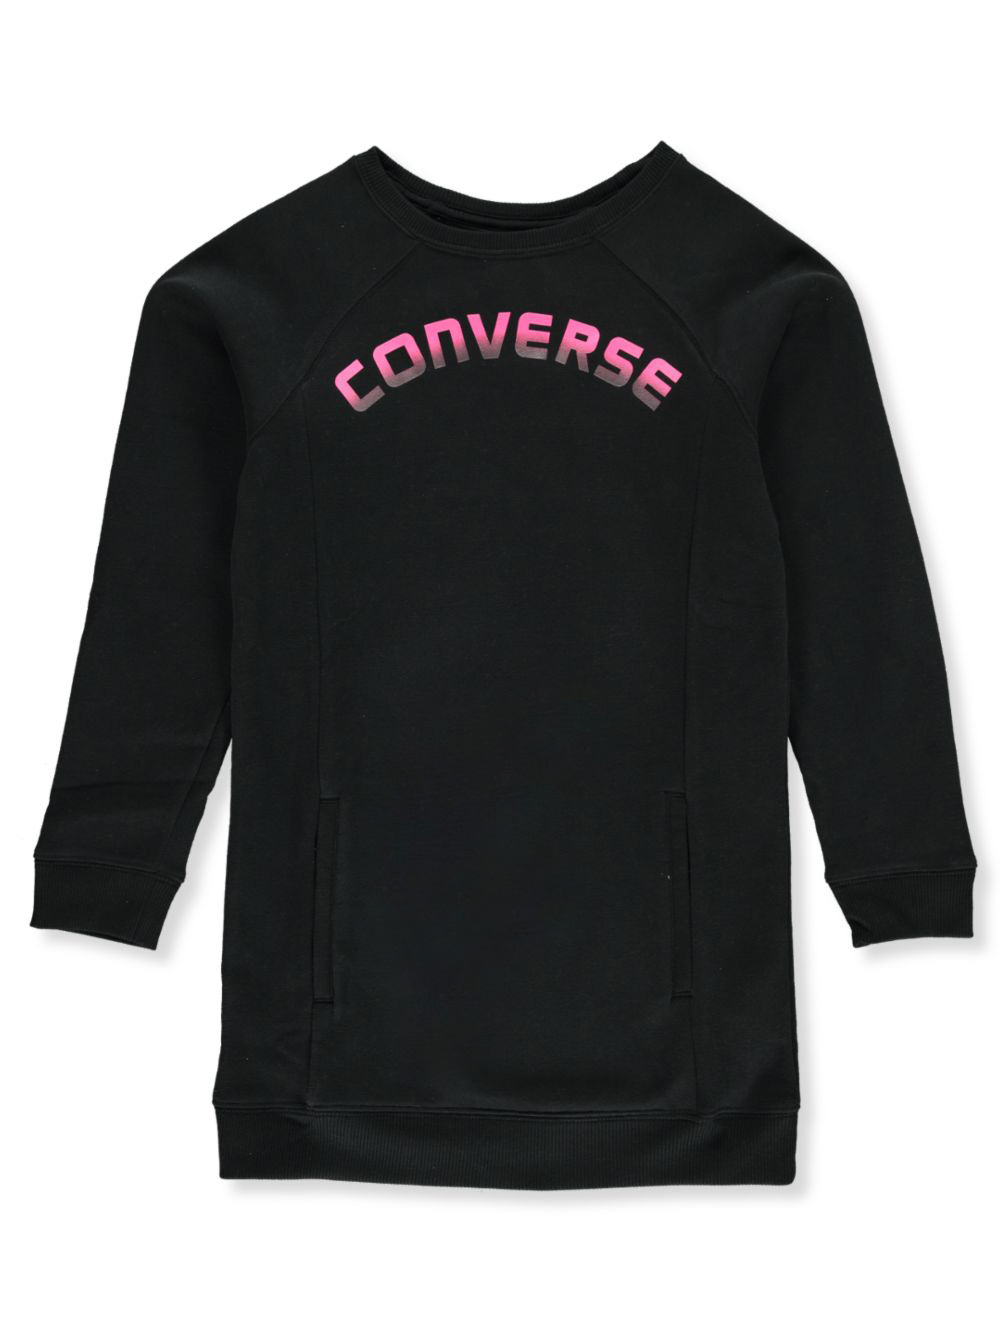 Girl's Sweatshirt